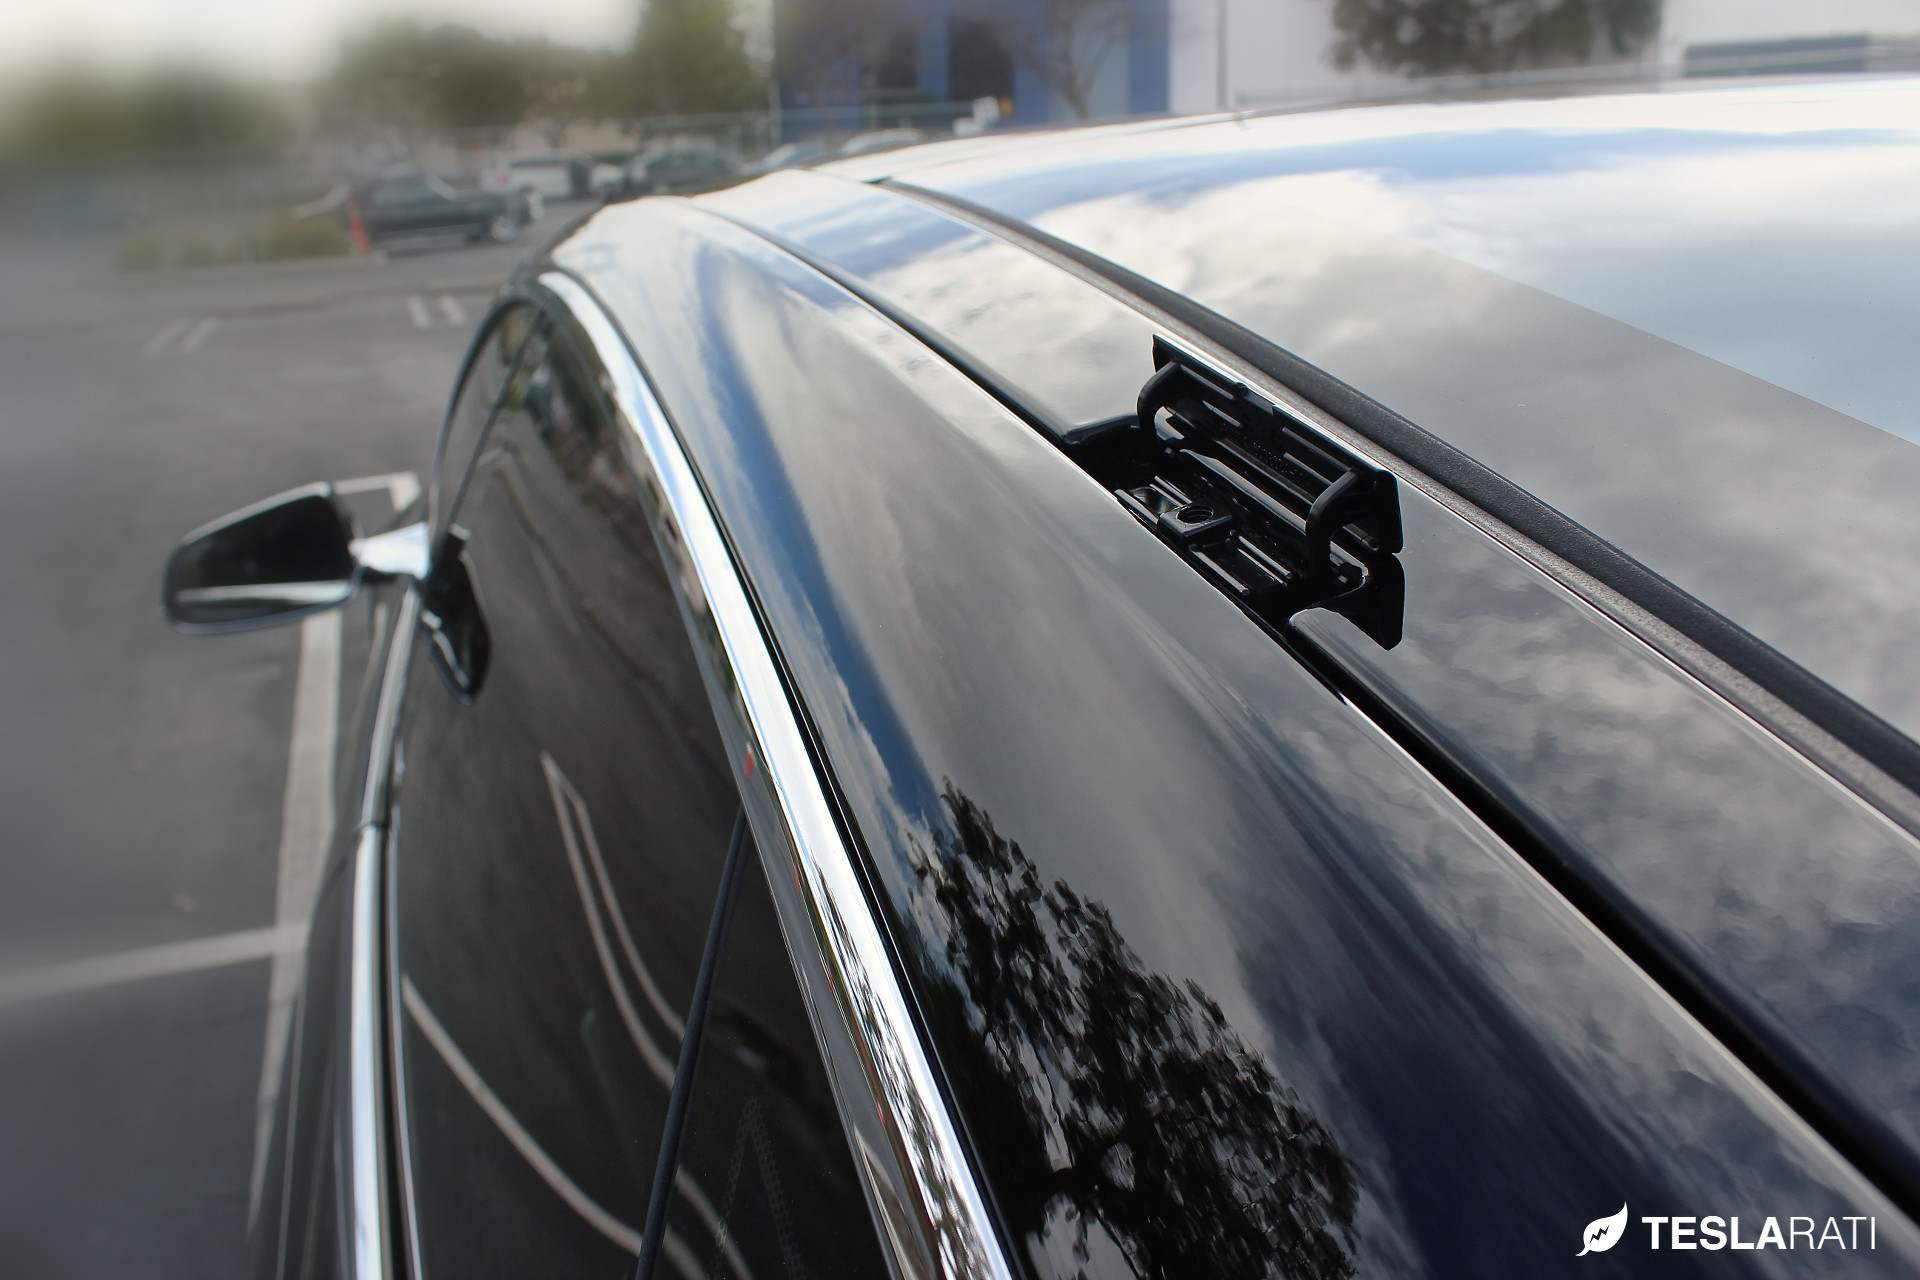 Tesla-Model-S-Whispbar-Roof-Rack-Latch